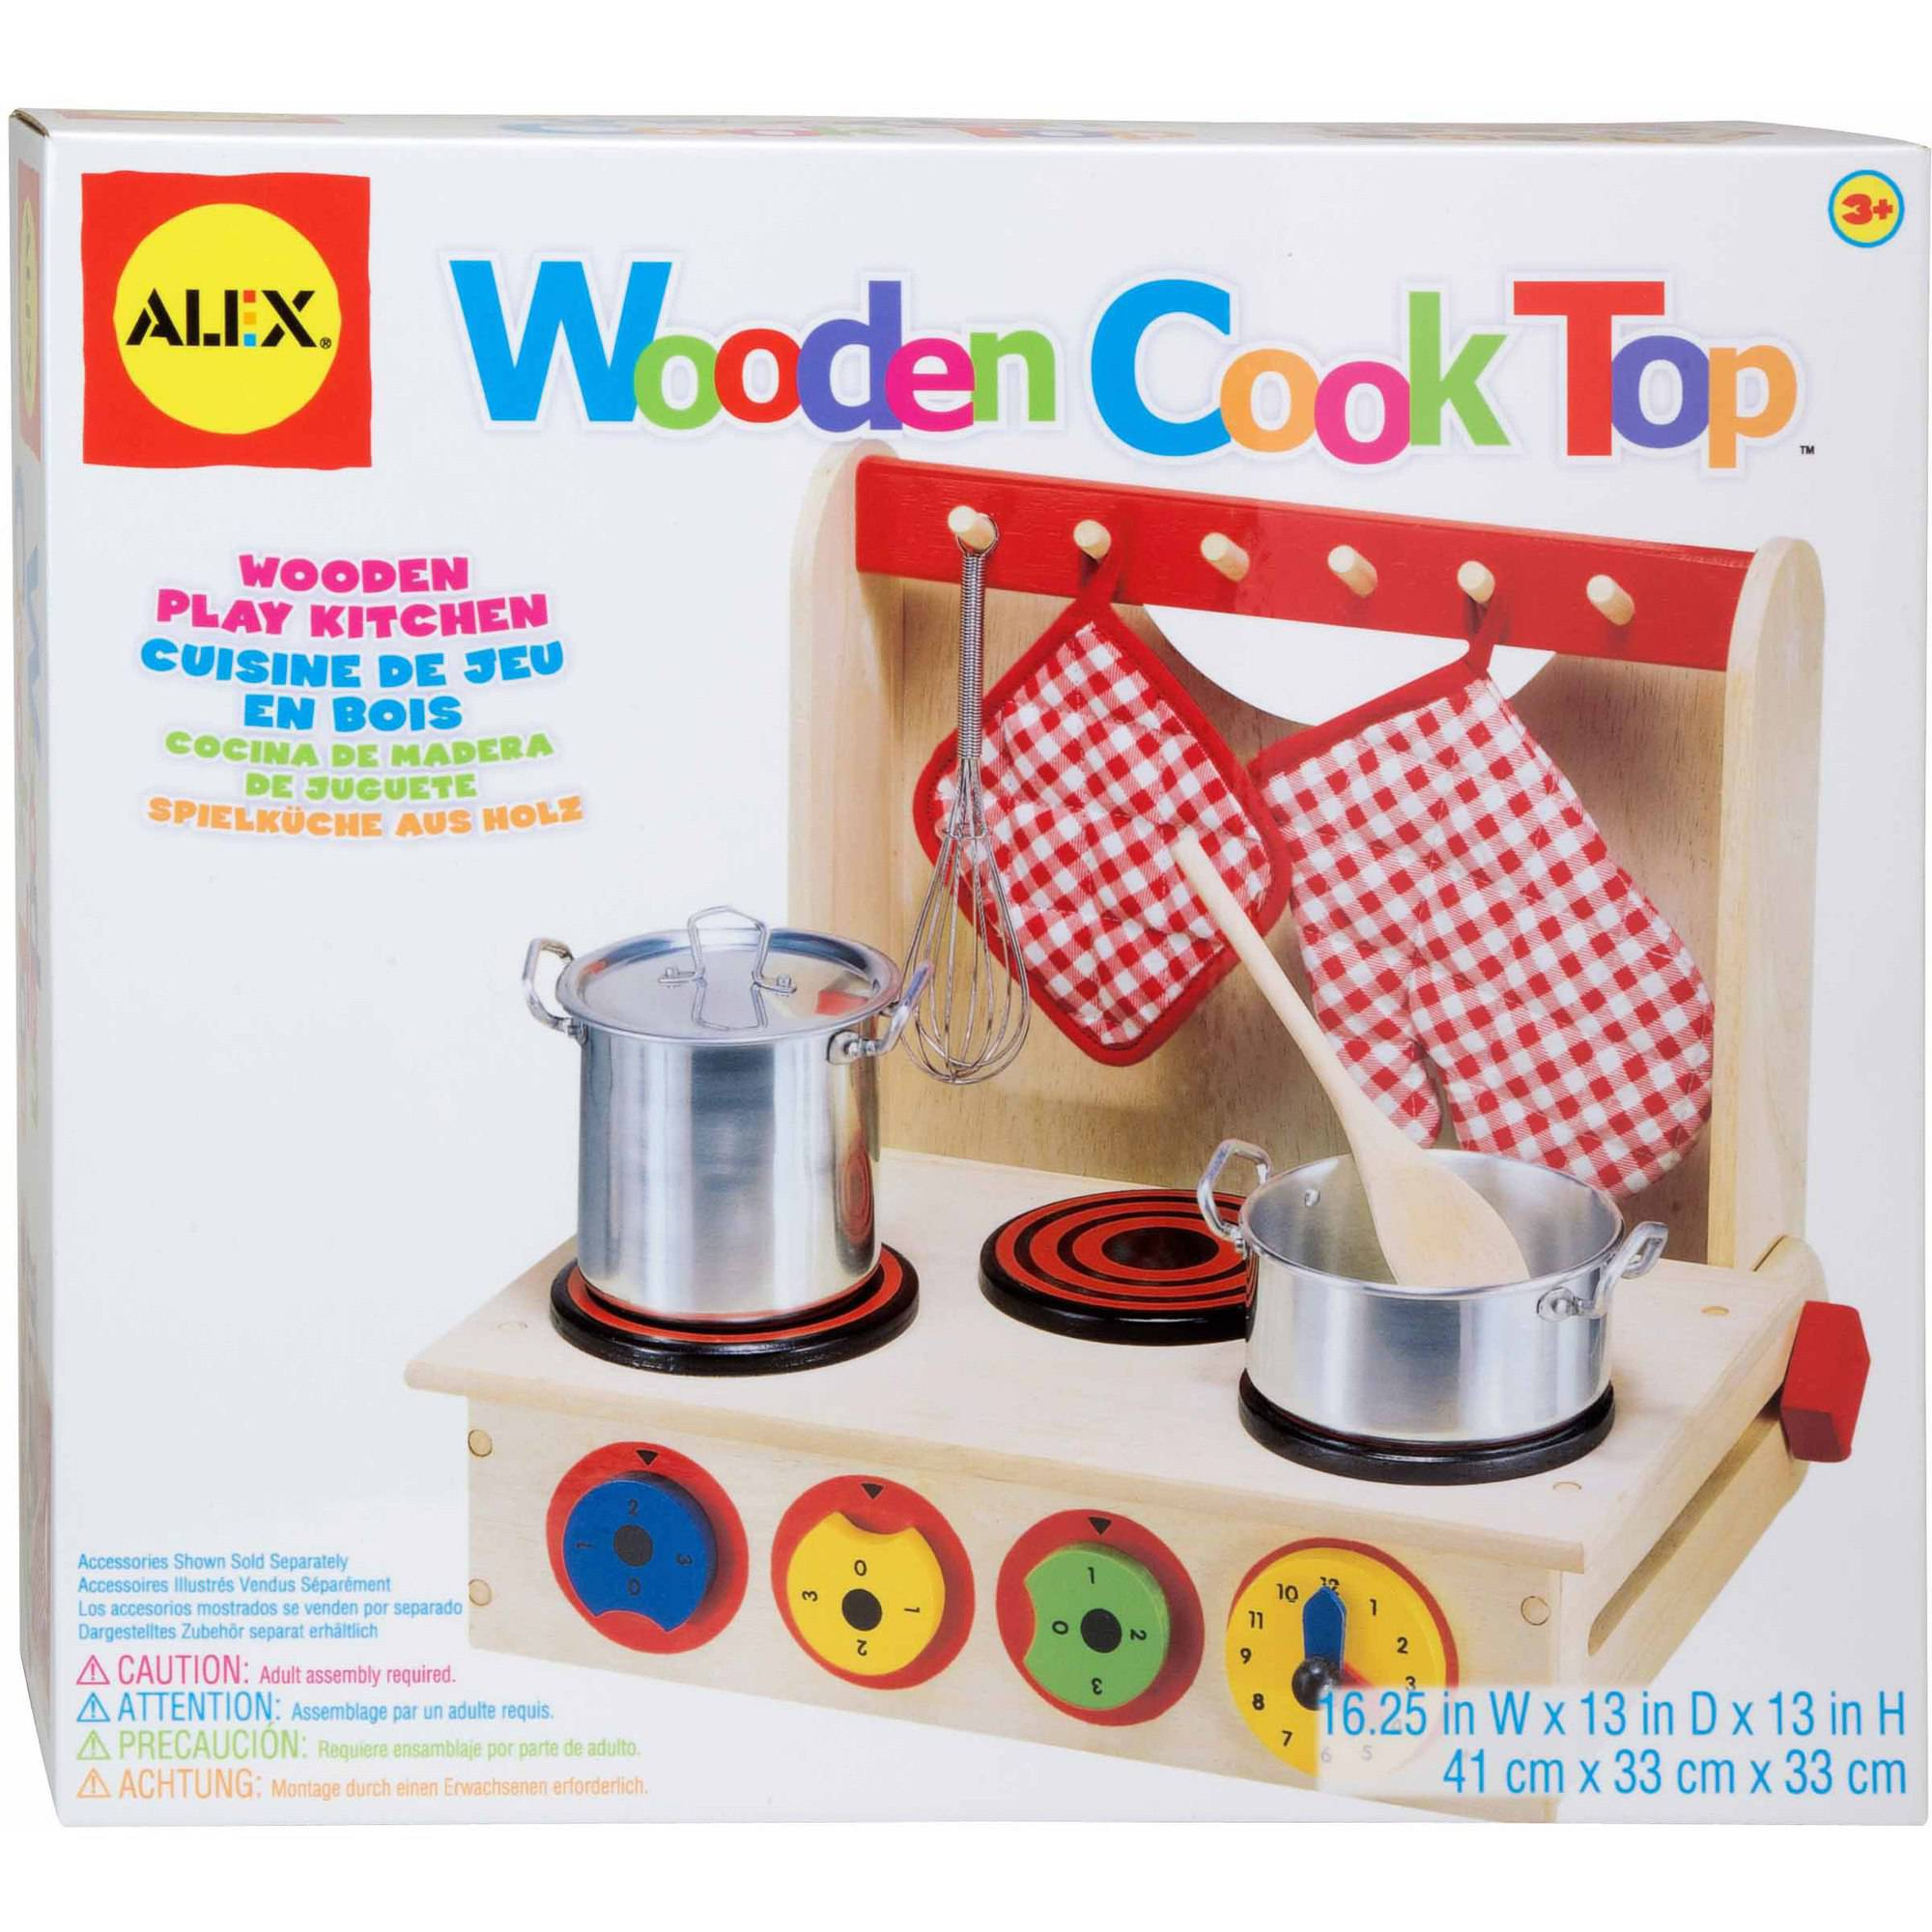 chunky.com recipes , dr scholl's custom fit review , target girls underwear, free educational games for 2nd graders, ALEX Toys Wooden Cook Top